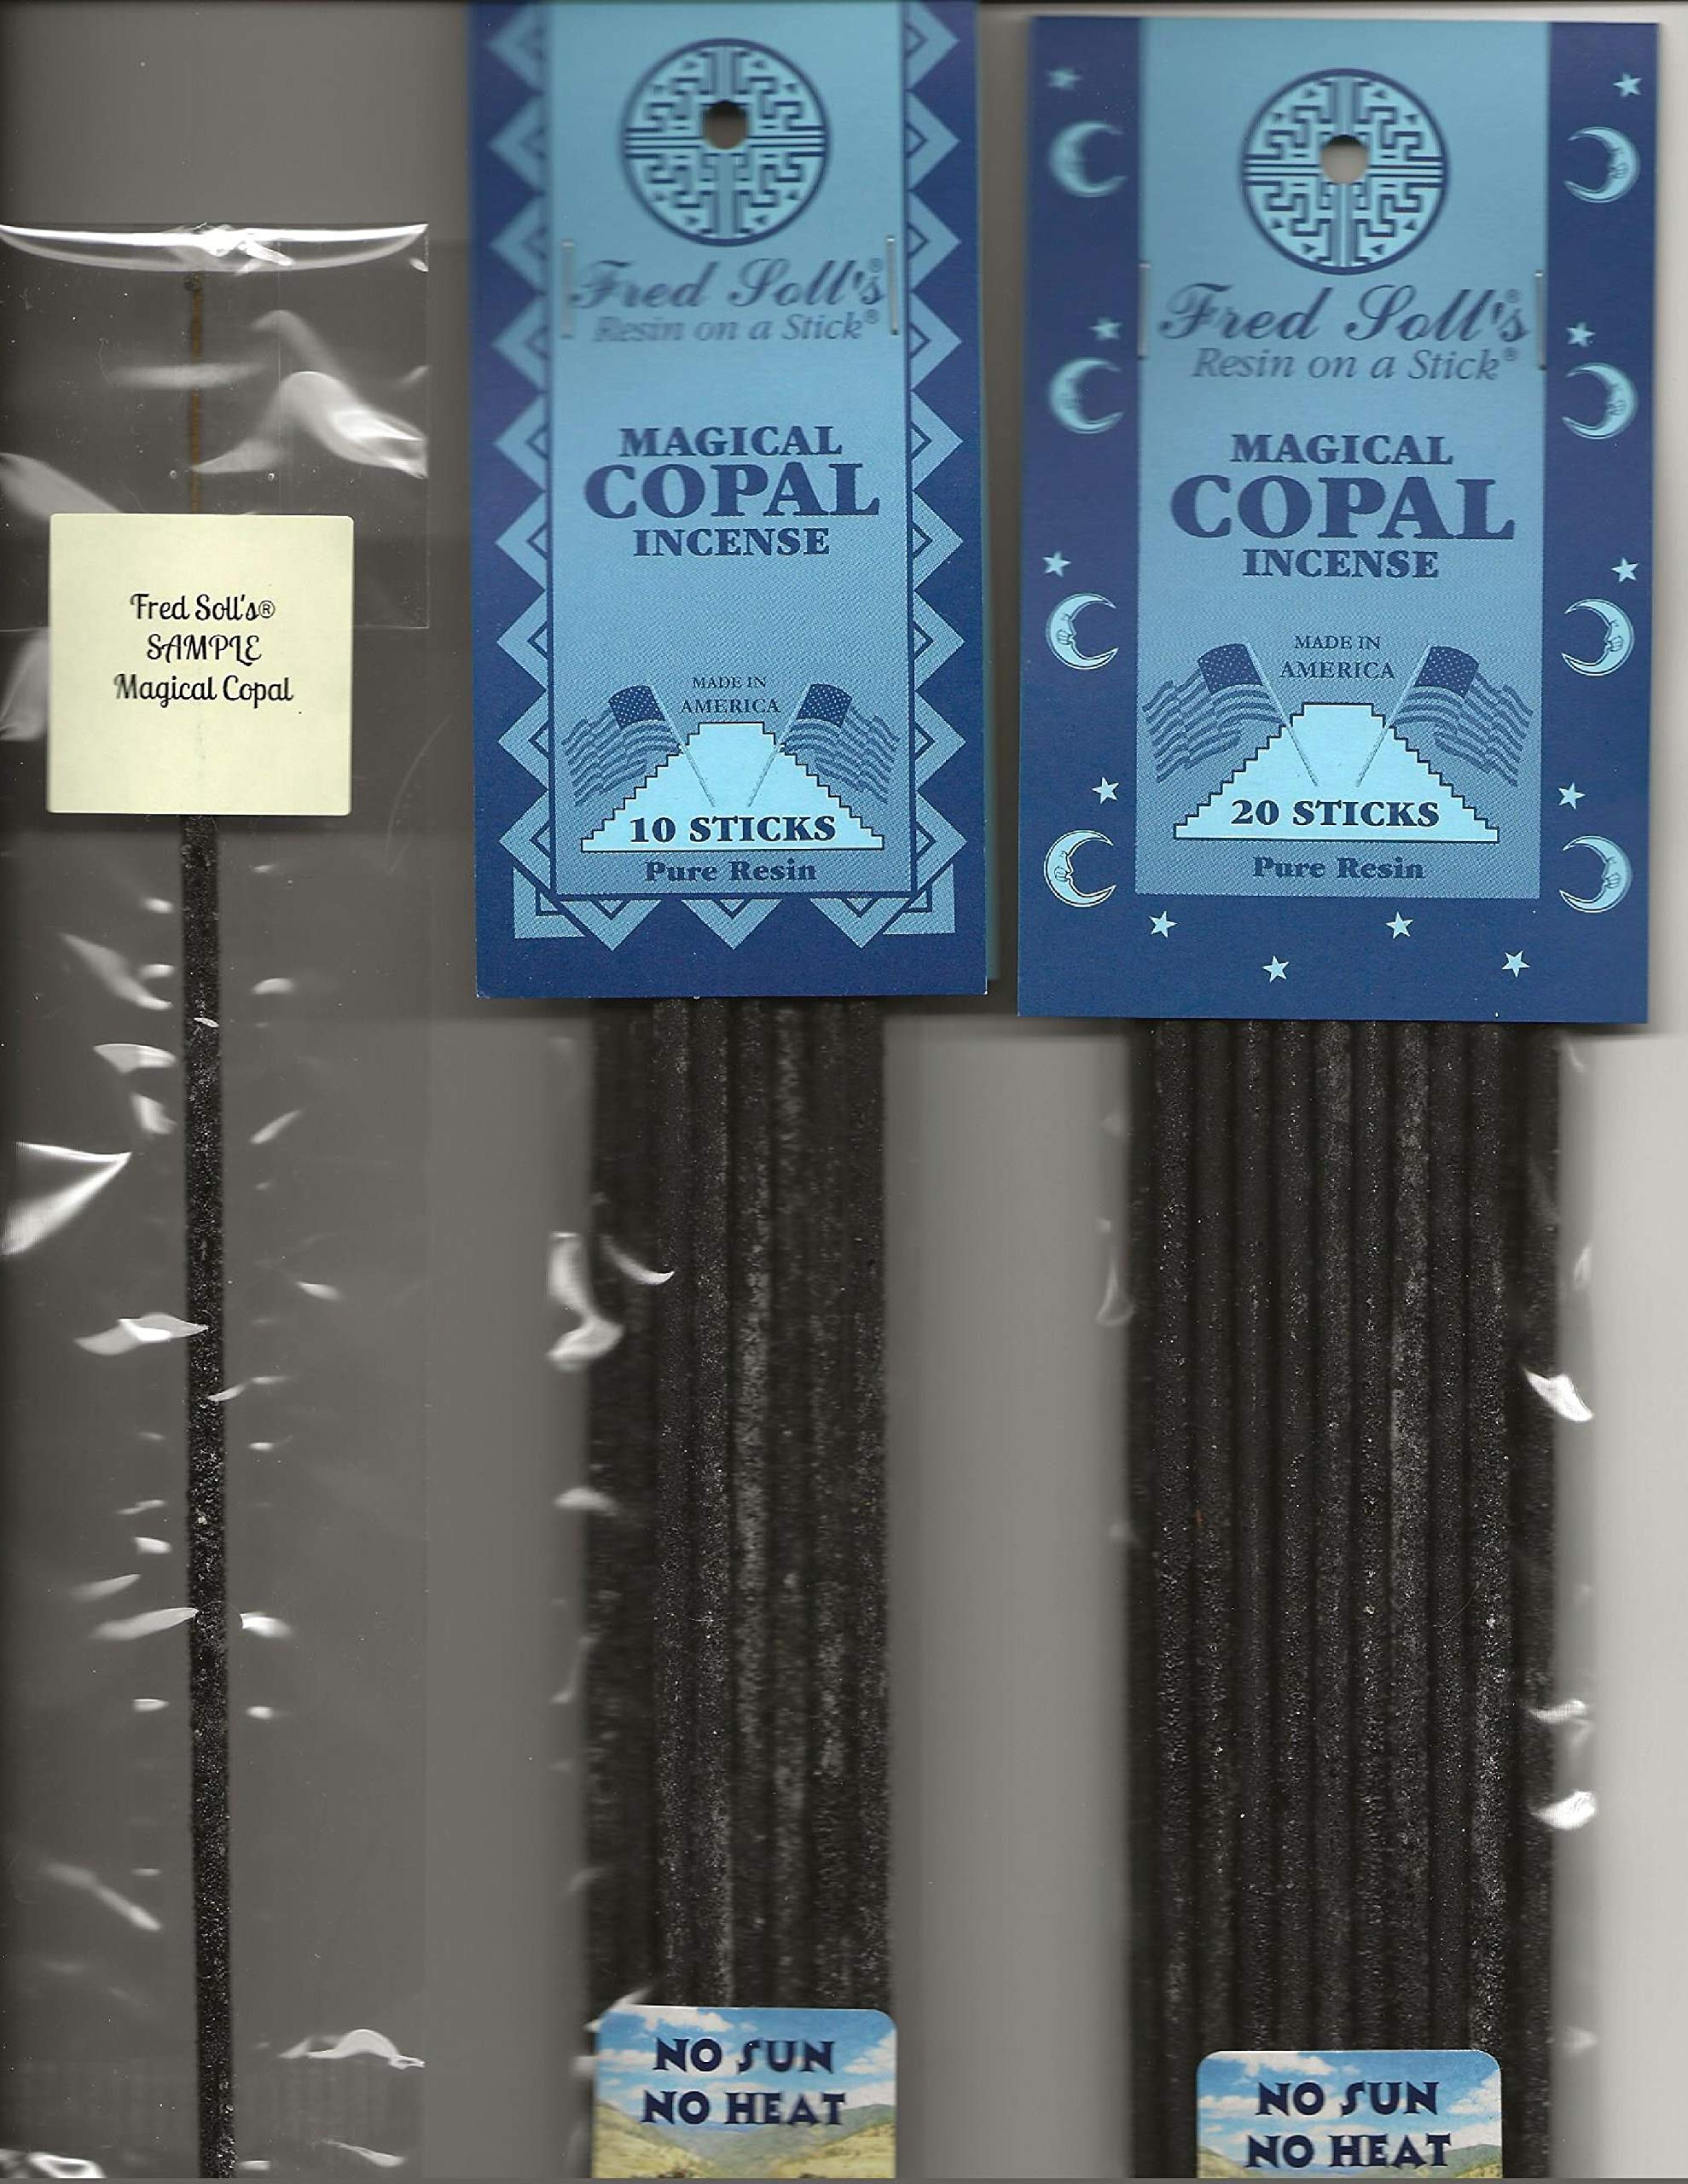 FRED SOLL'S Resin ON A Stick Magical Copal Incense (1)